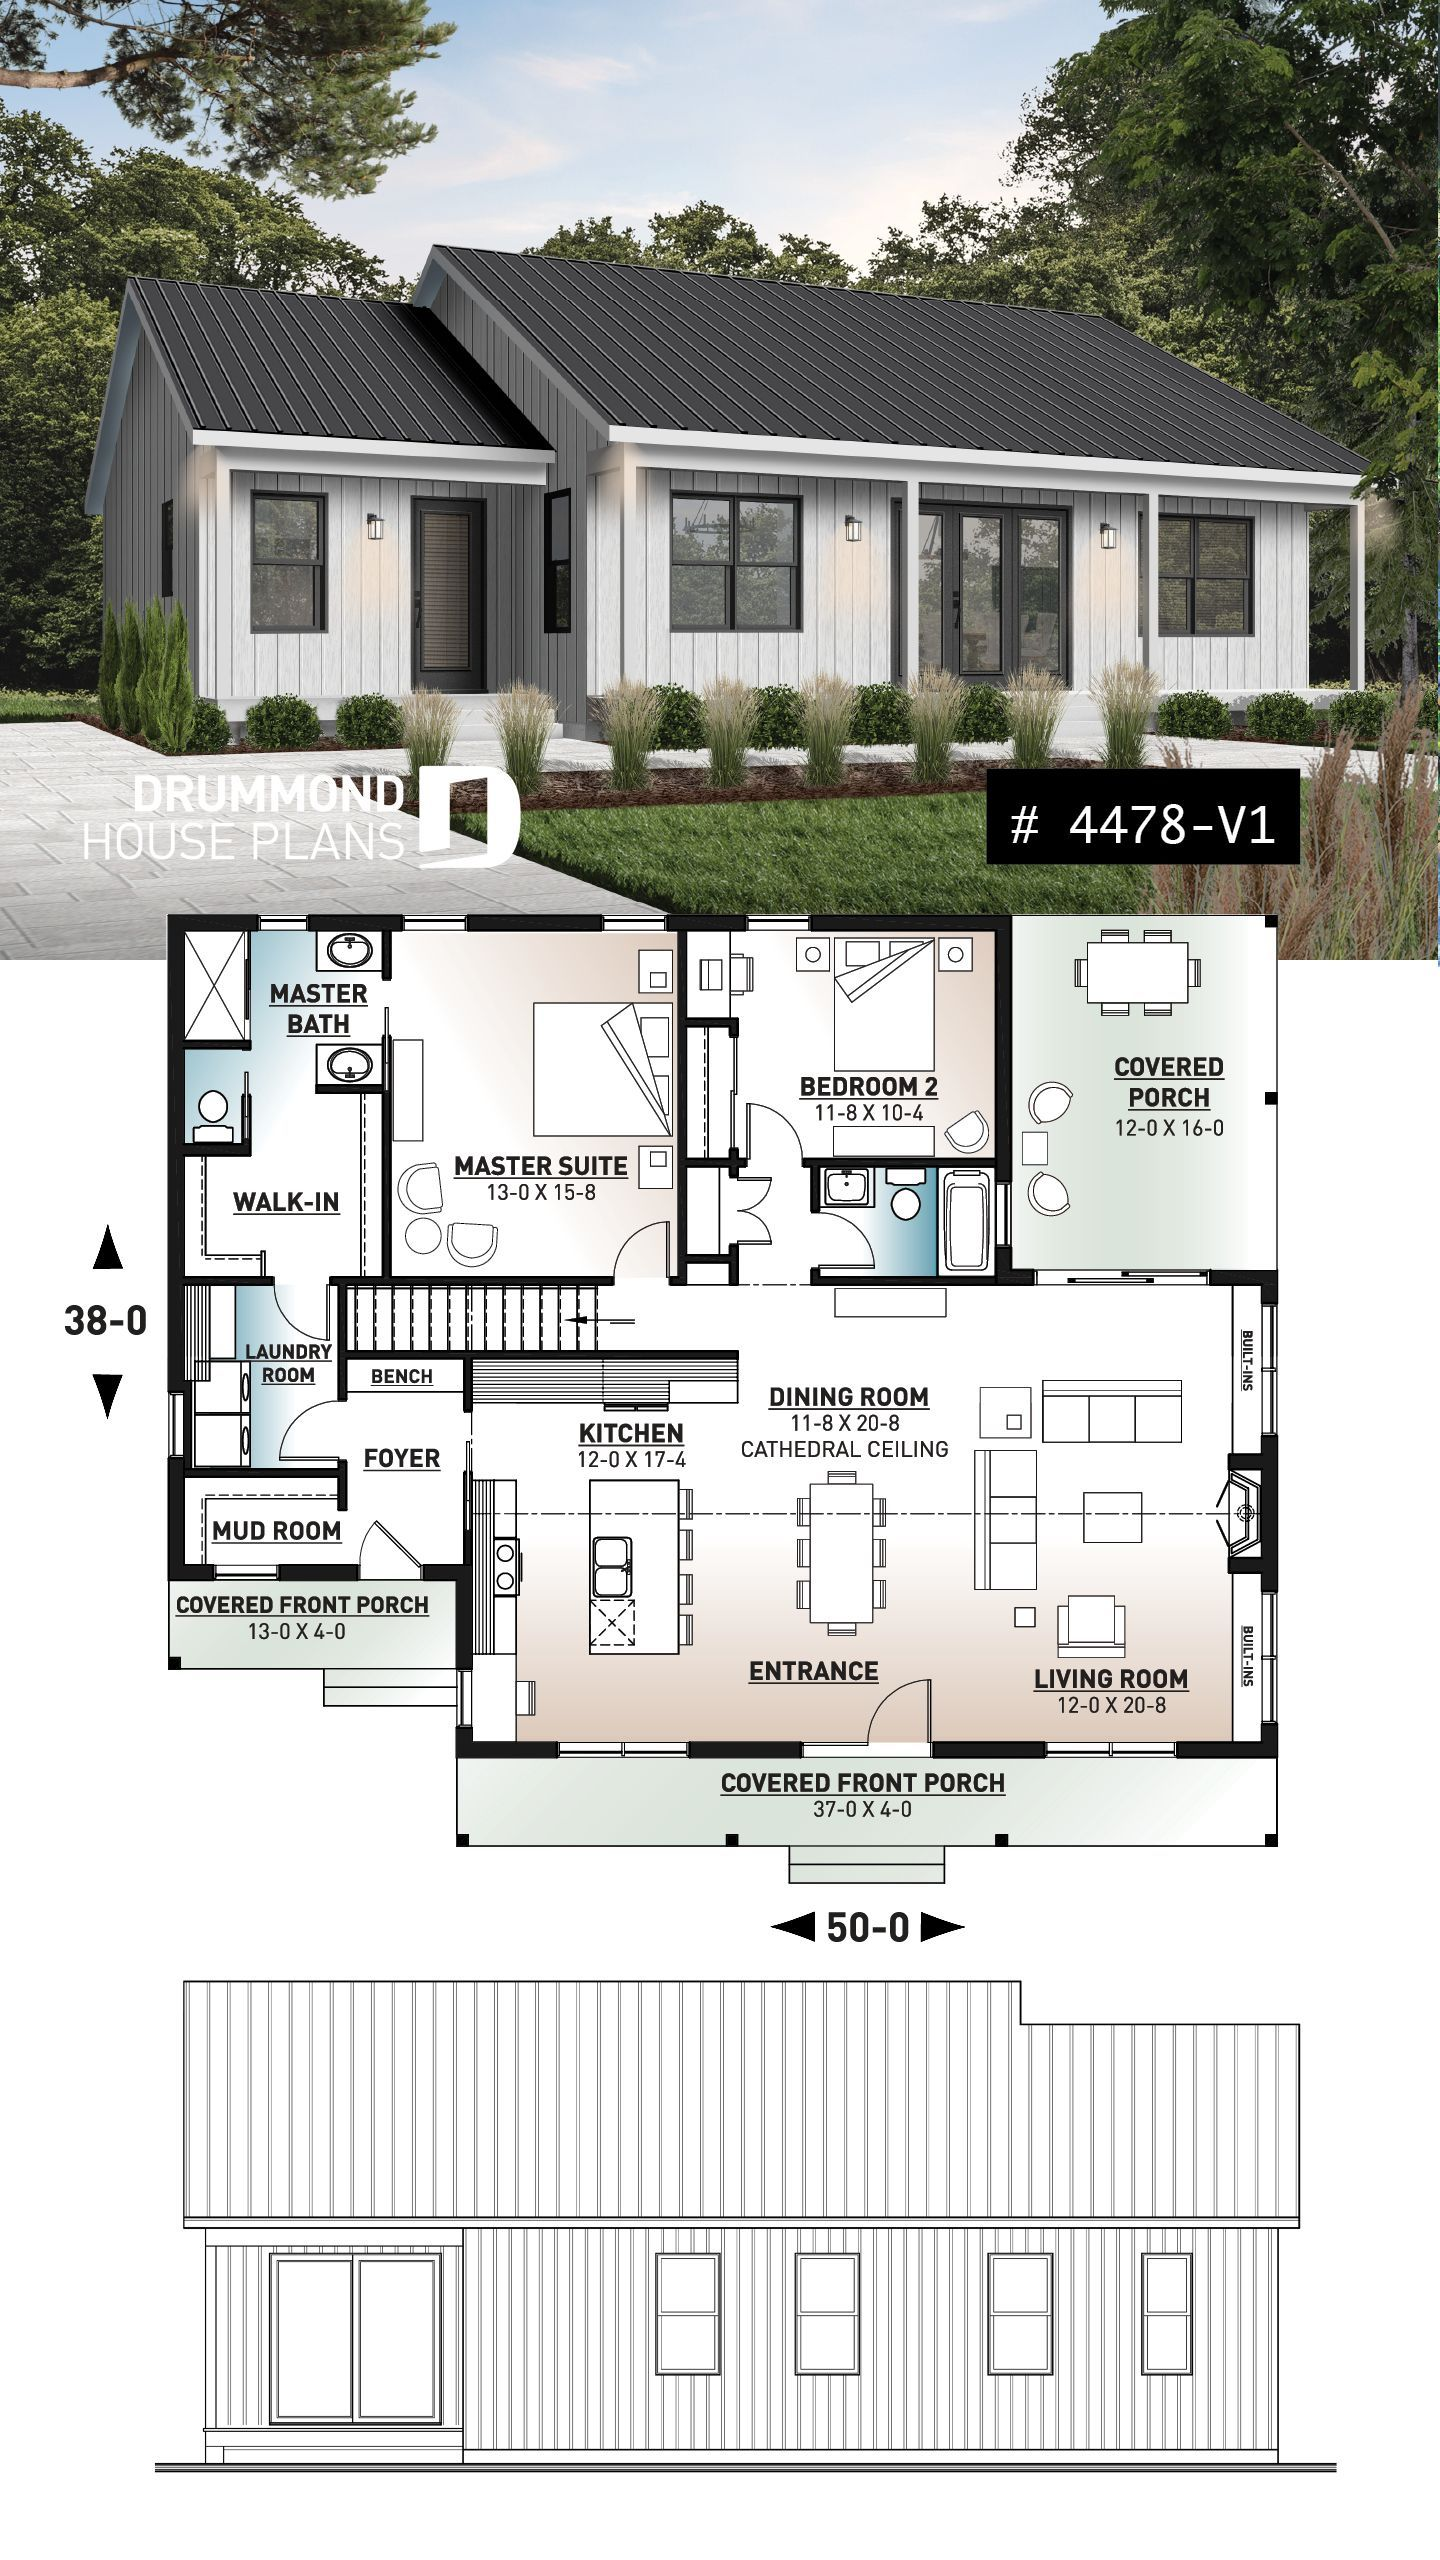 Discover The Plan 4478 V1 Beauford 2 Which Will Please You For Its 2 Bedrooms And For Its Ranch Styles In 2020 House Plans Farmhouse Drummond House Plans Dream House Plans